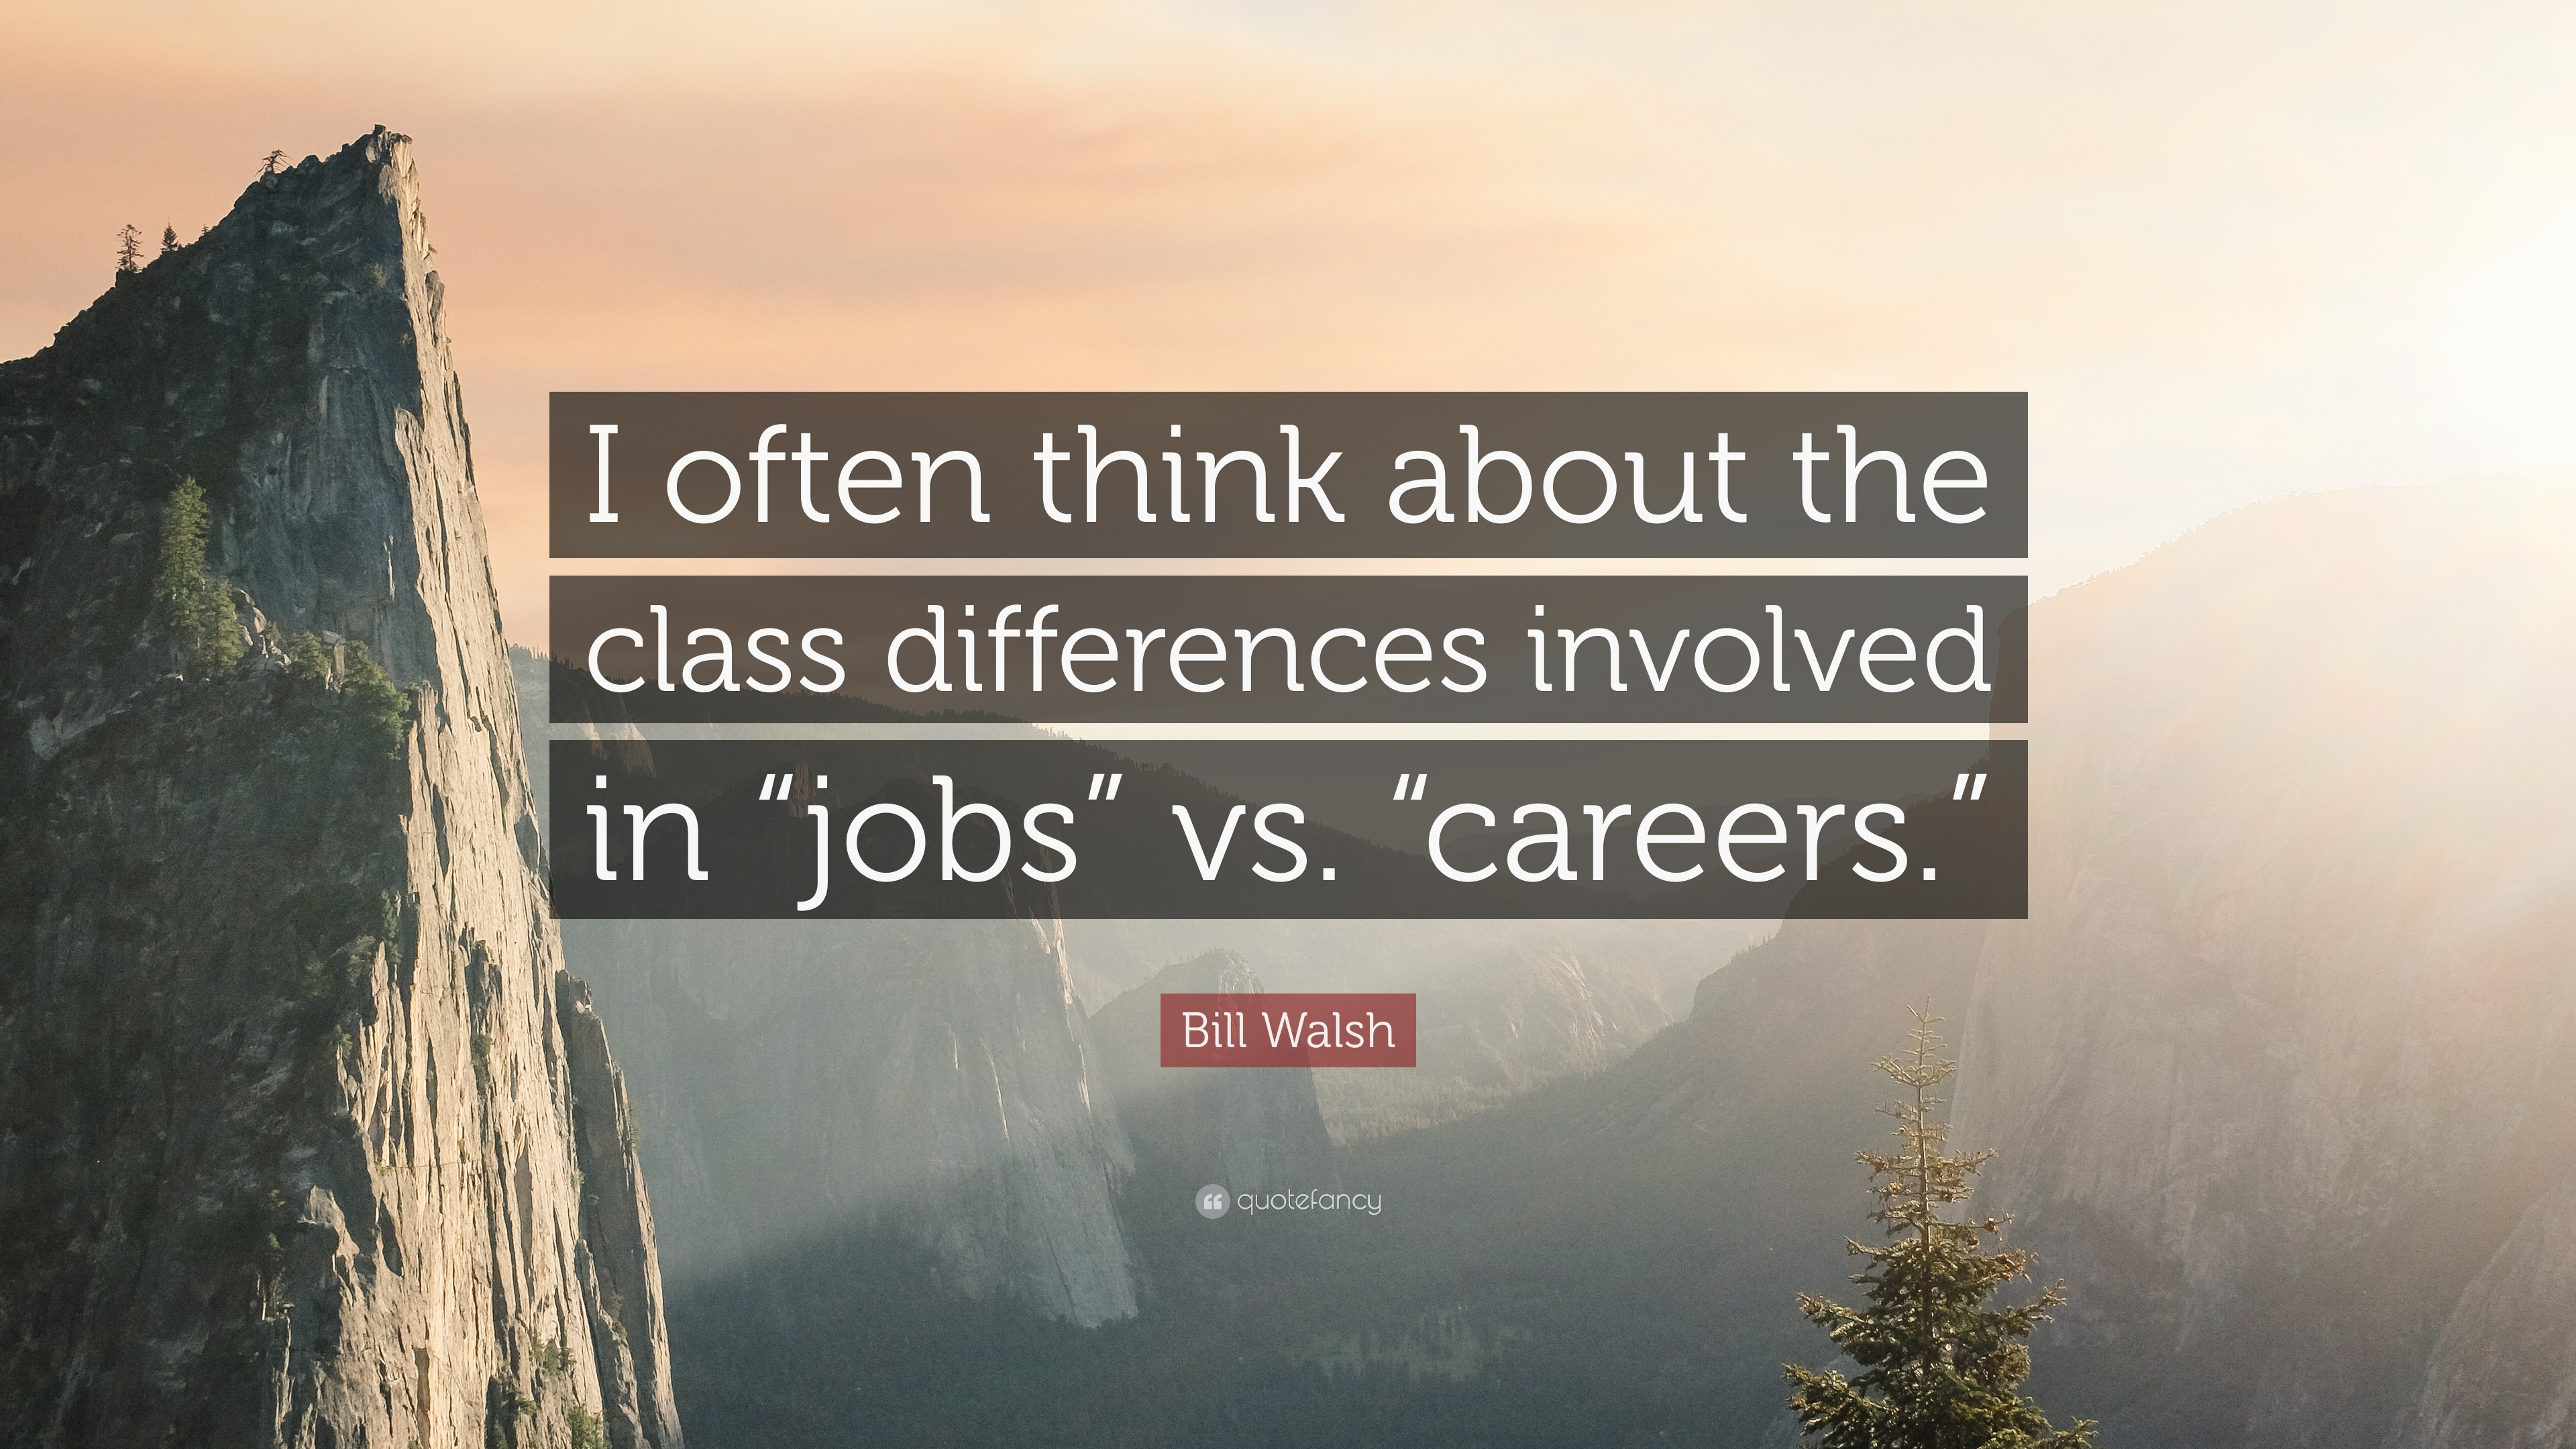 bill walsh quotes quotefancy bill walsh quote i often think about the class differences involved in jobs